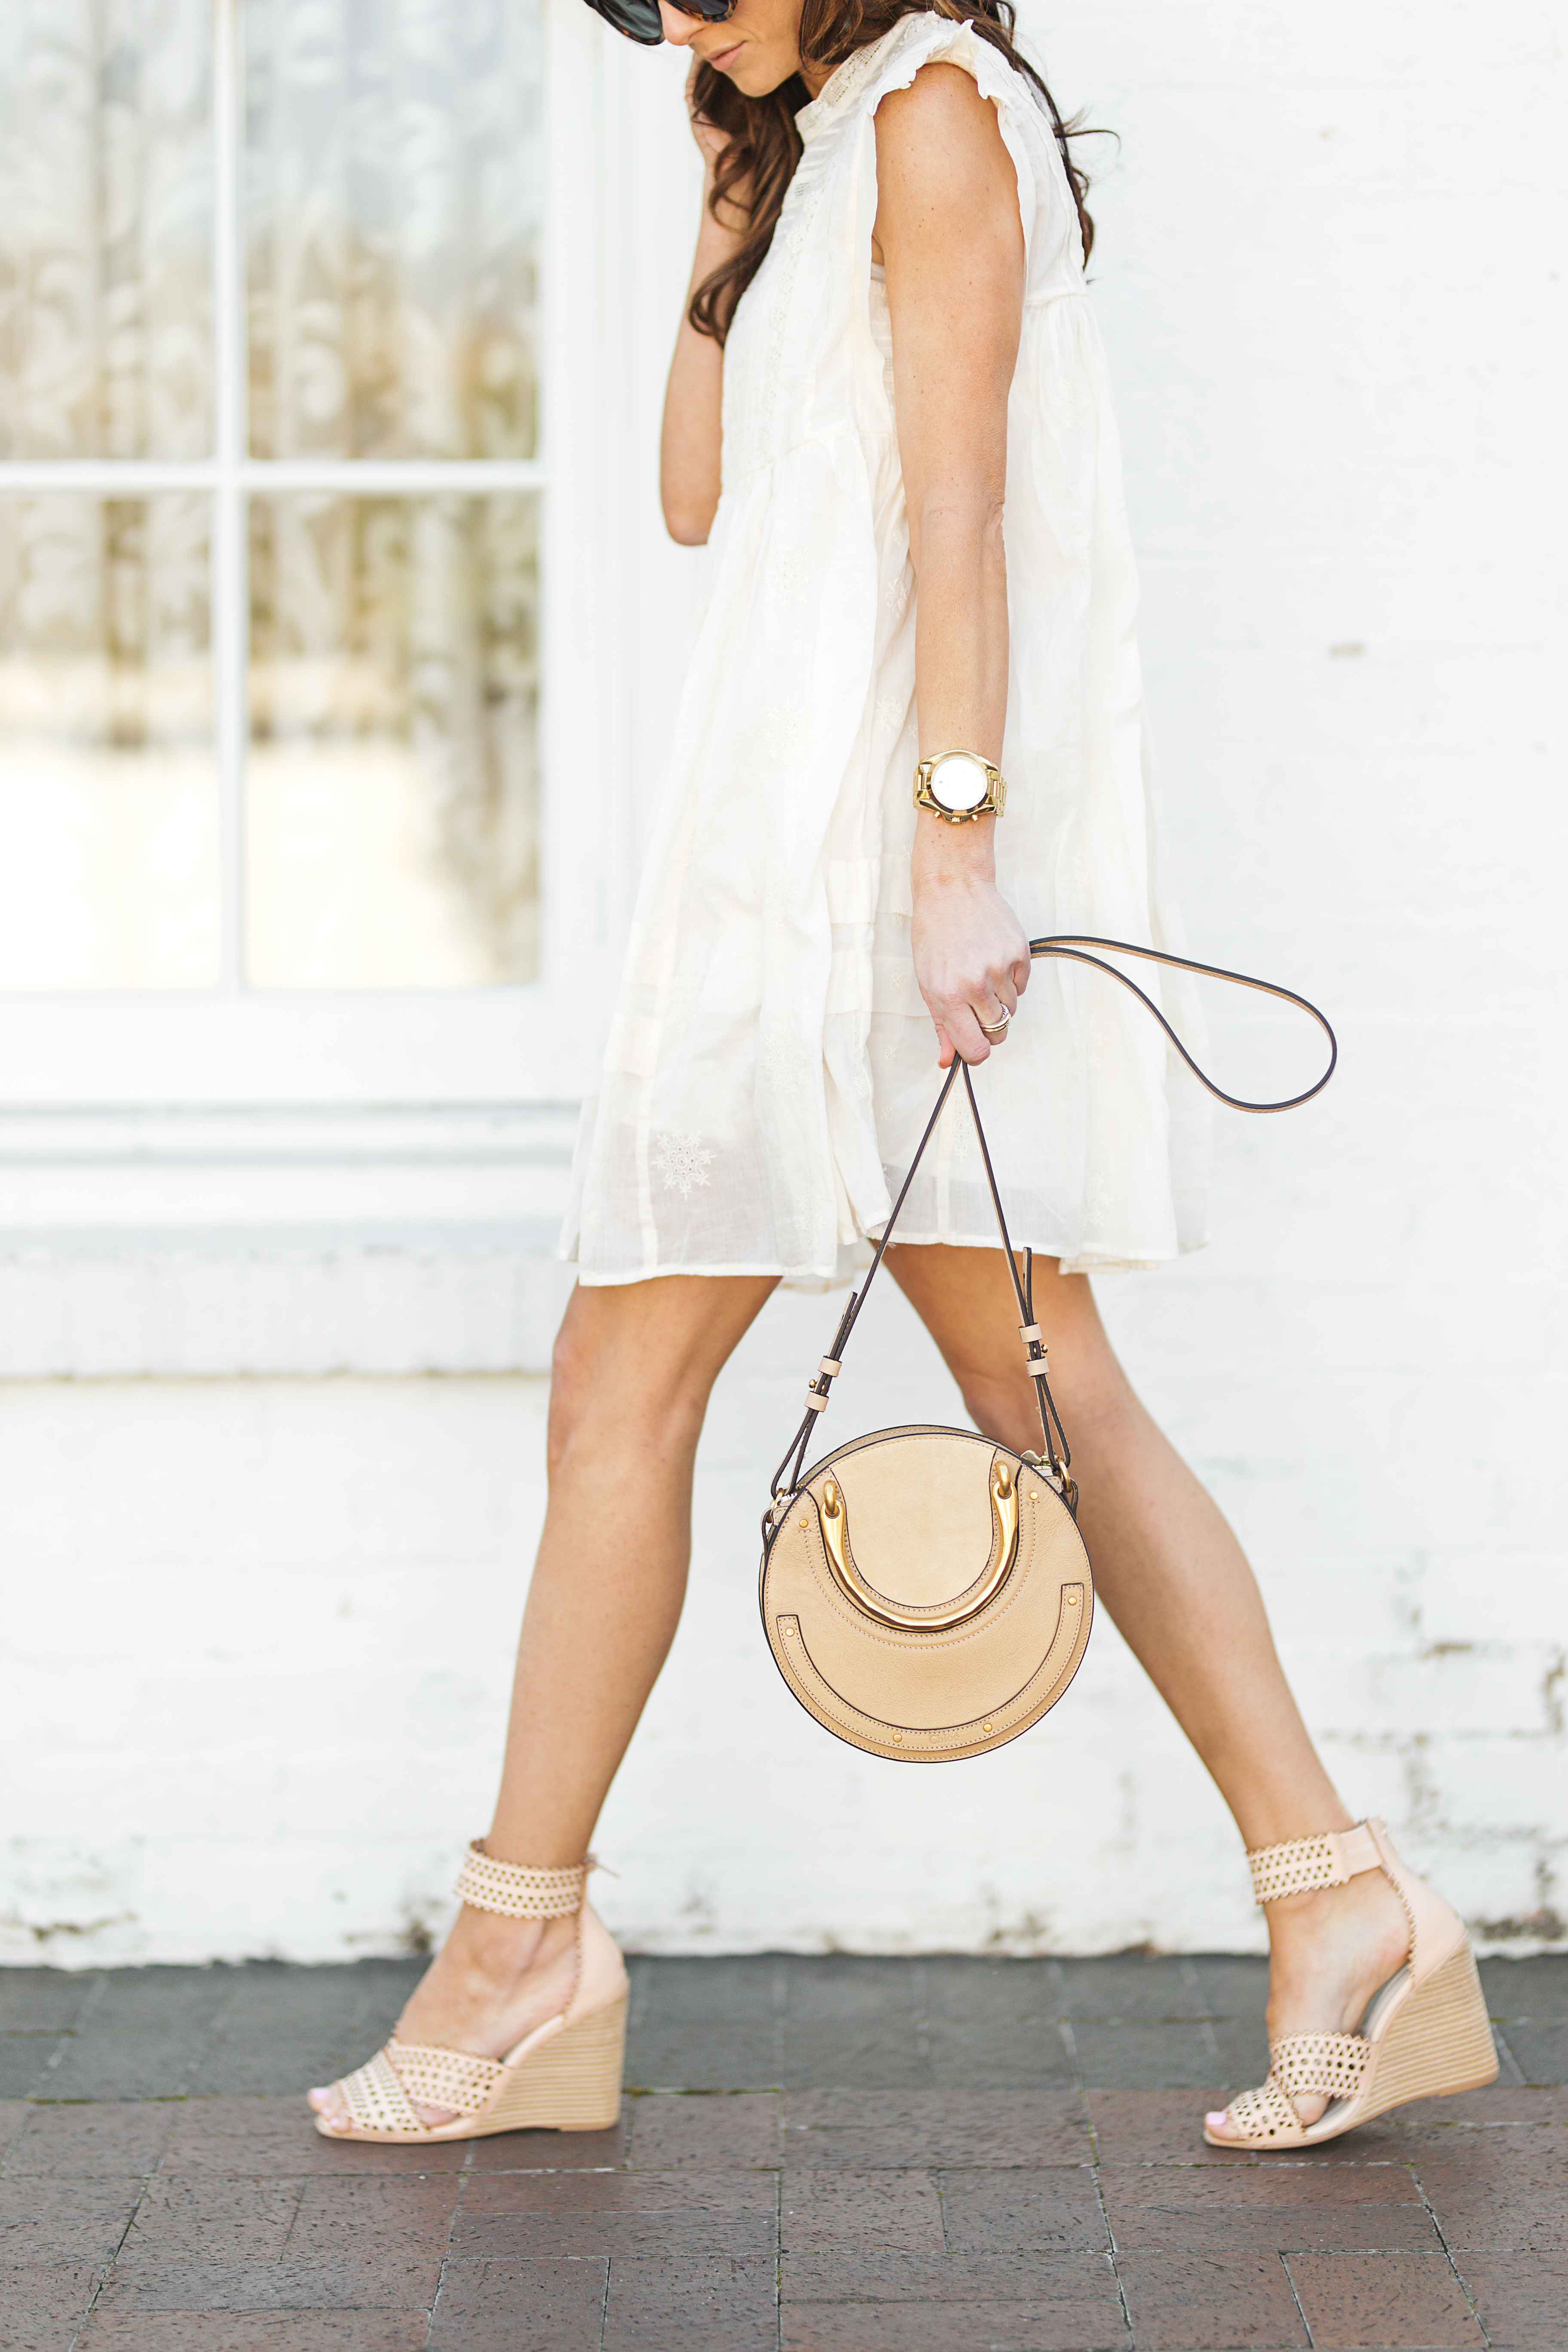 spring dress, spring dresses, free people, jeffrey campbell, chloe pixie handbag, gucci, gucci giveaway, giveaway